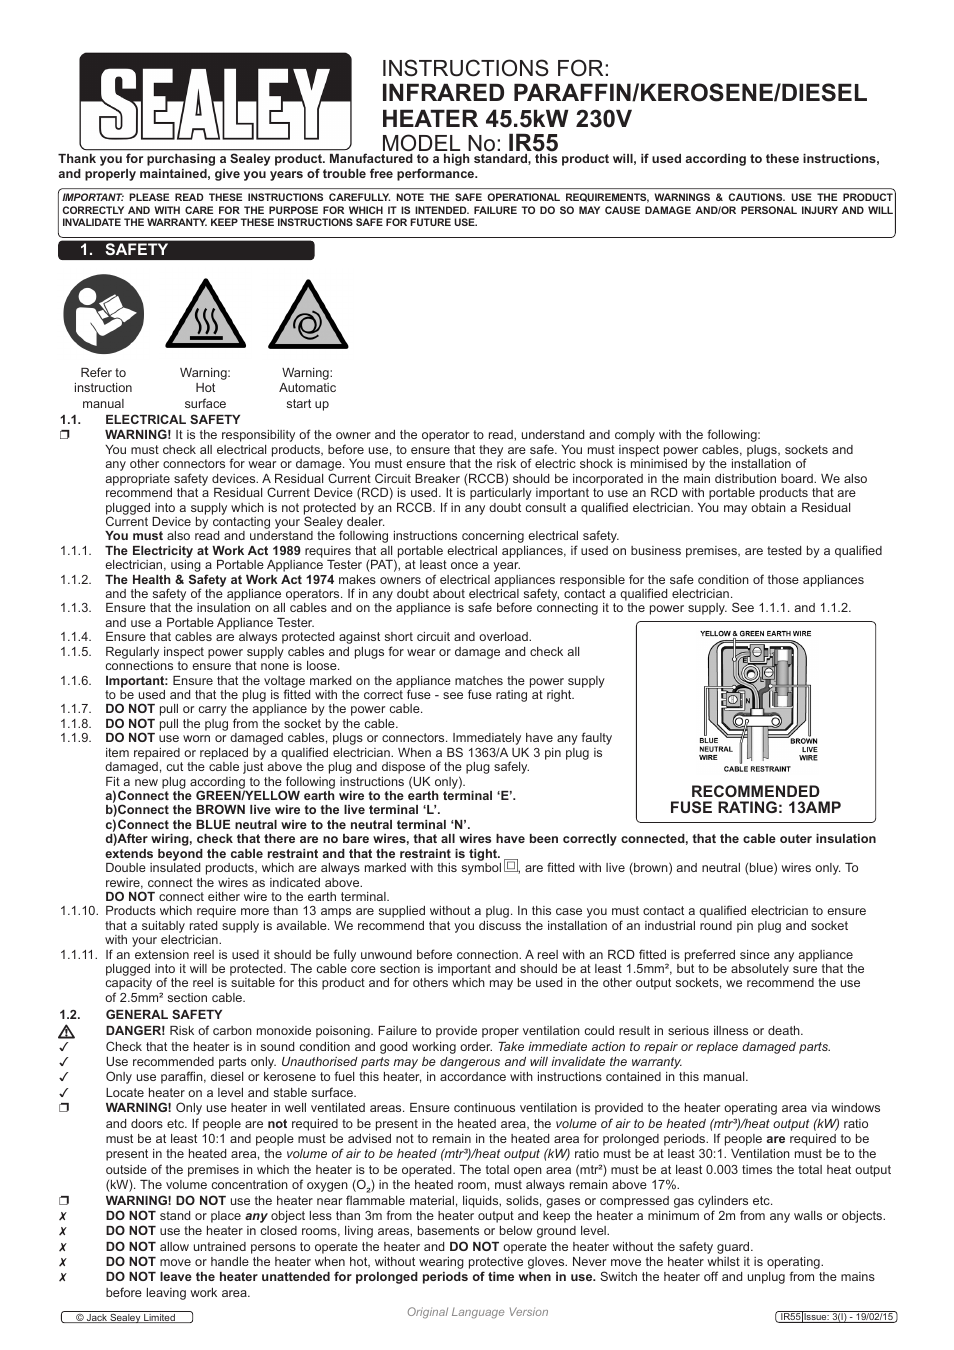 Sealey IR55 User Manual | 8 pages